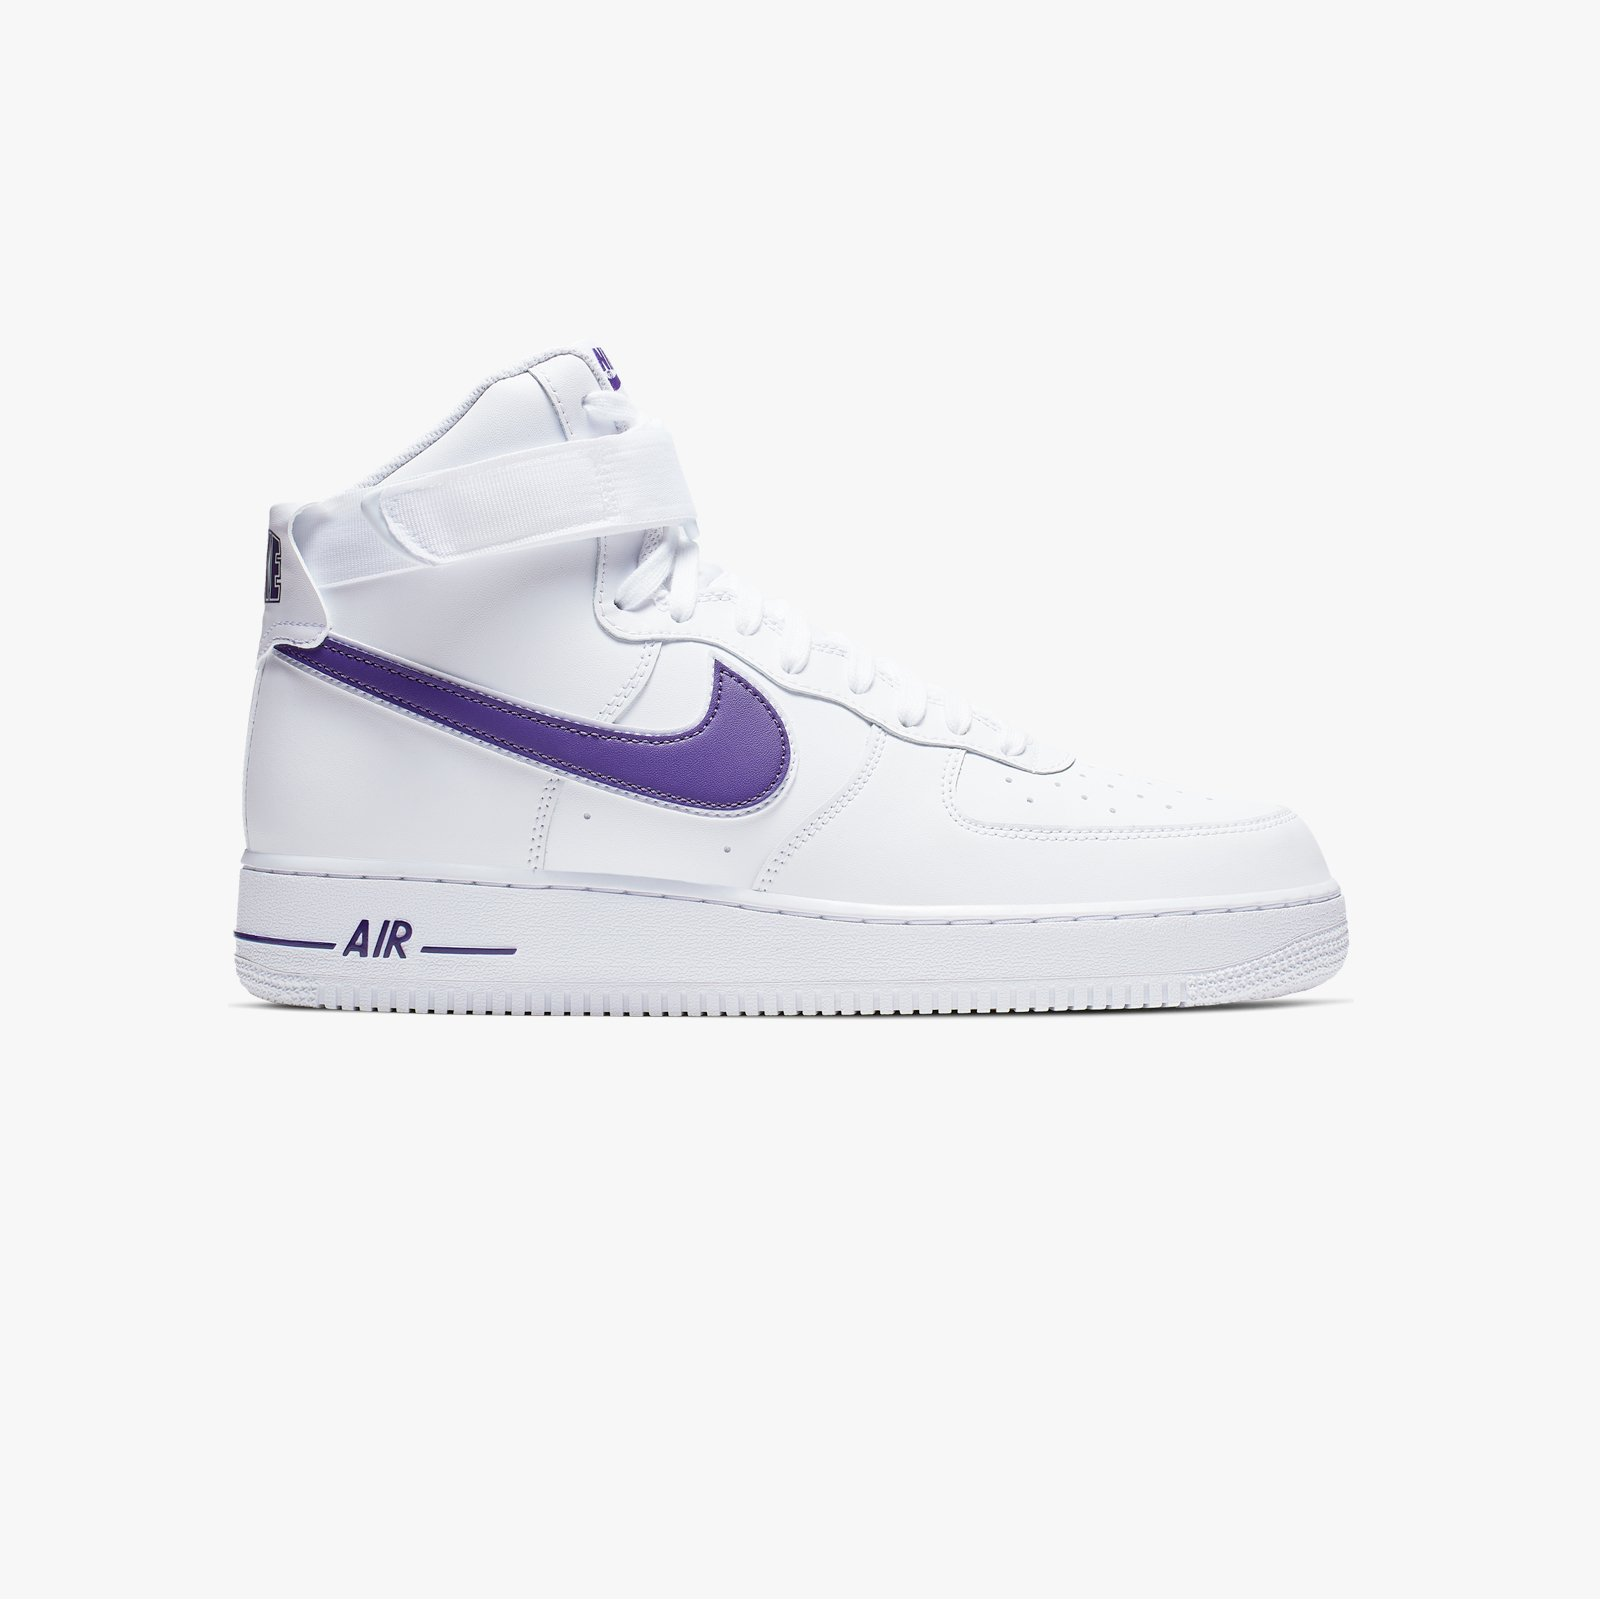 Nike Air Force 1 High 07 3 At4141 103 Sneakersnstuff